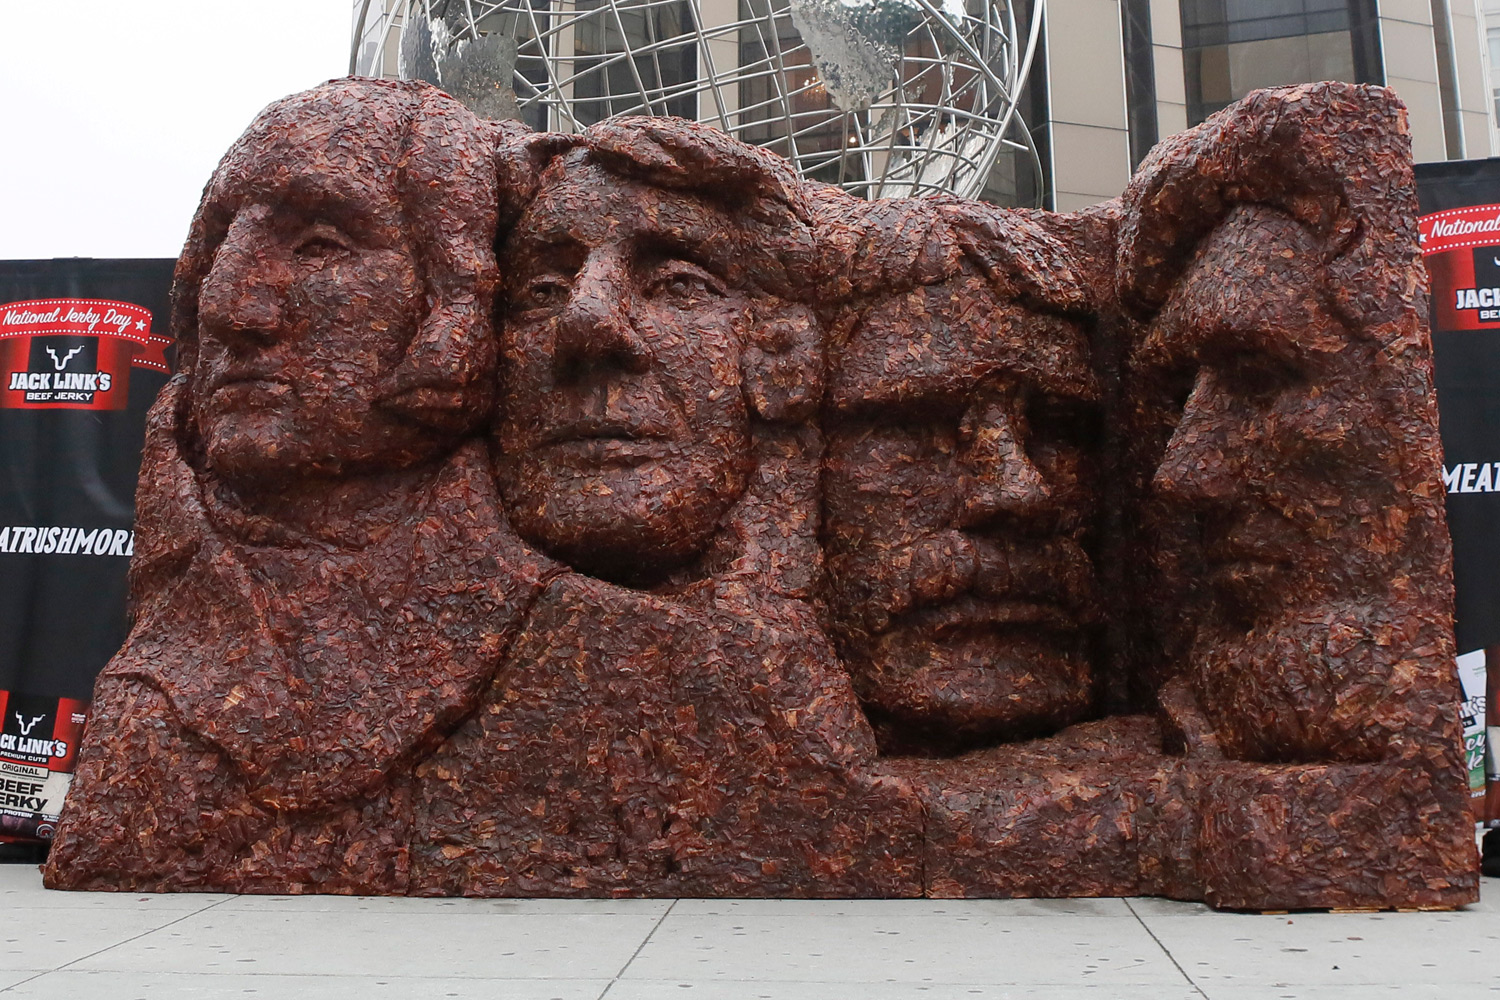 Jack Link's debuts Meat Rushmore, a 13-foot tall, 17-foot wide meat replica of Mount Rushmore National Memorial, on display Thursday, June 12, 2014, in New York City's Columbus Circle.